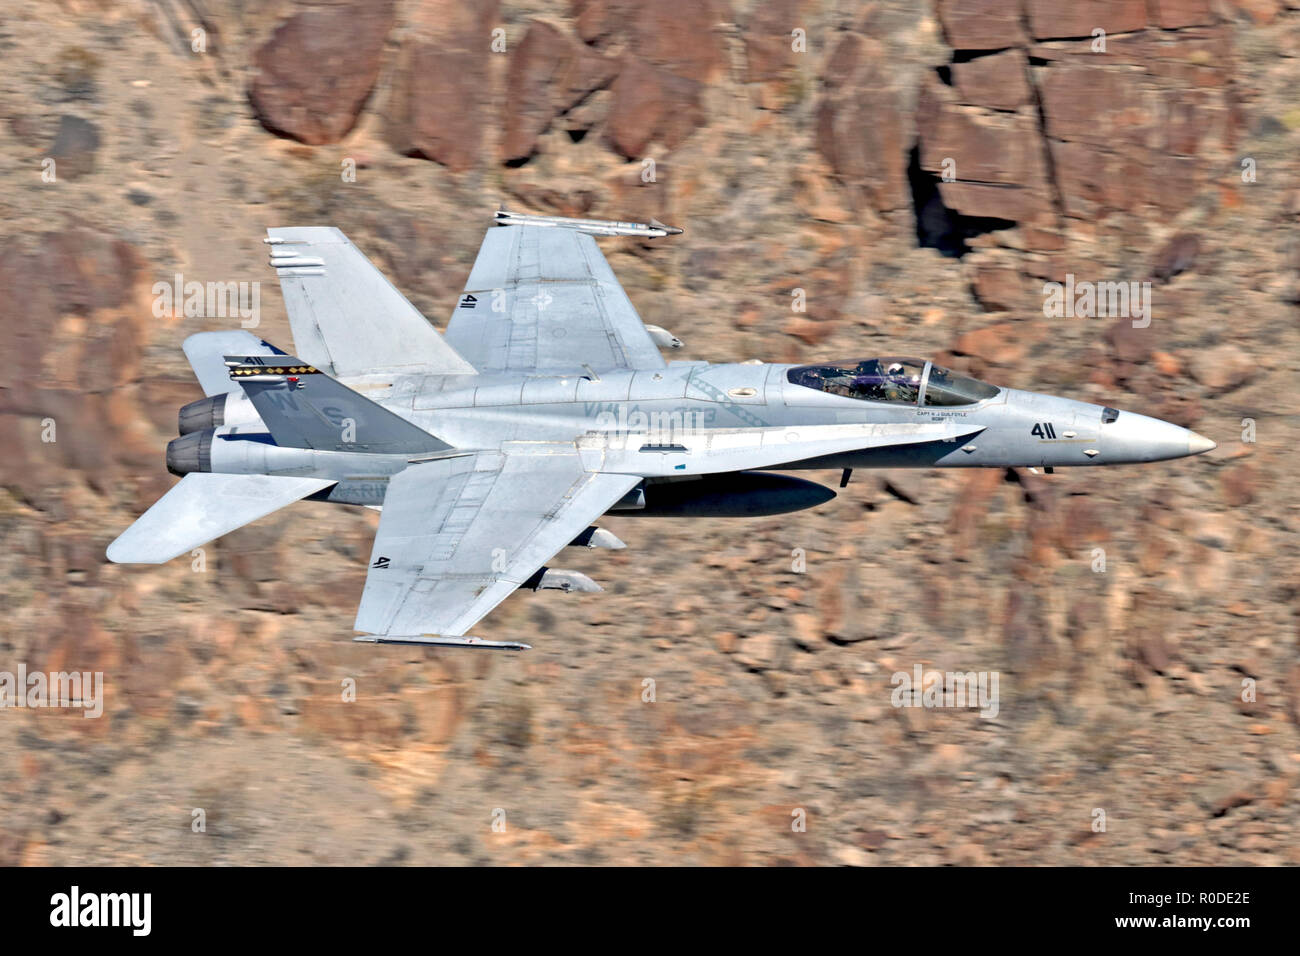 Boeing F/A-18C Hornet flown by US Marines squadron VMFA-323 'Death Rattlers' from Miramar MCAS Flying through Death Valley during 2018 - Stock Image